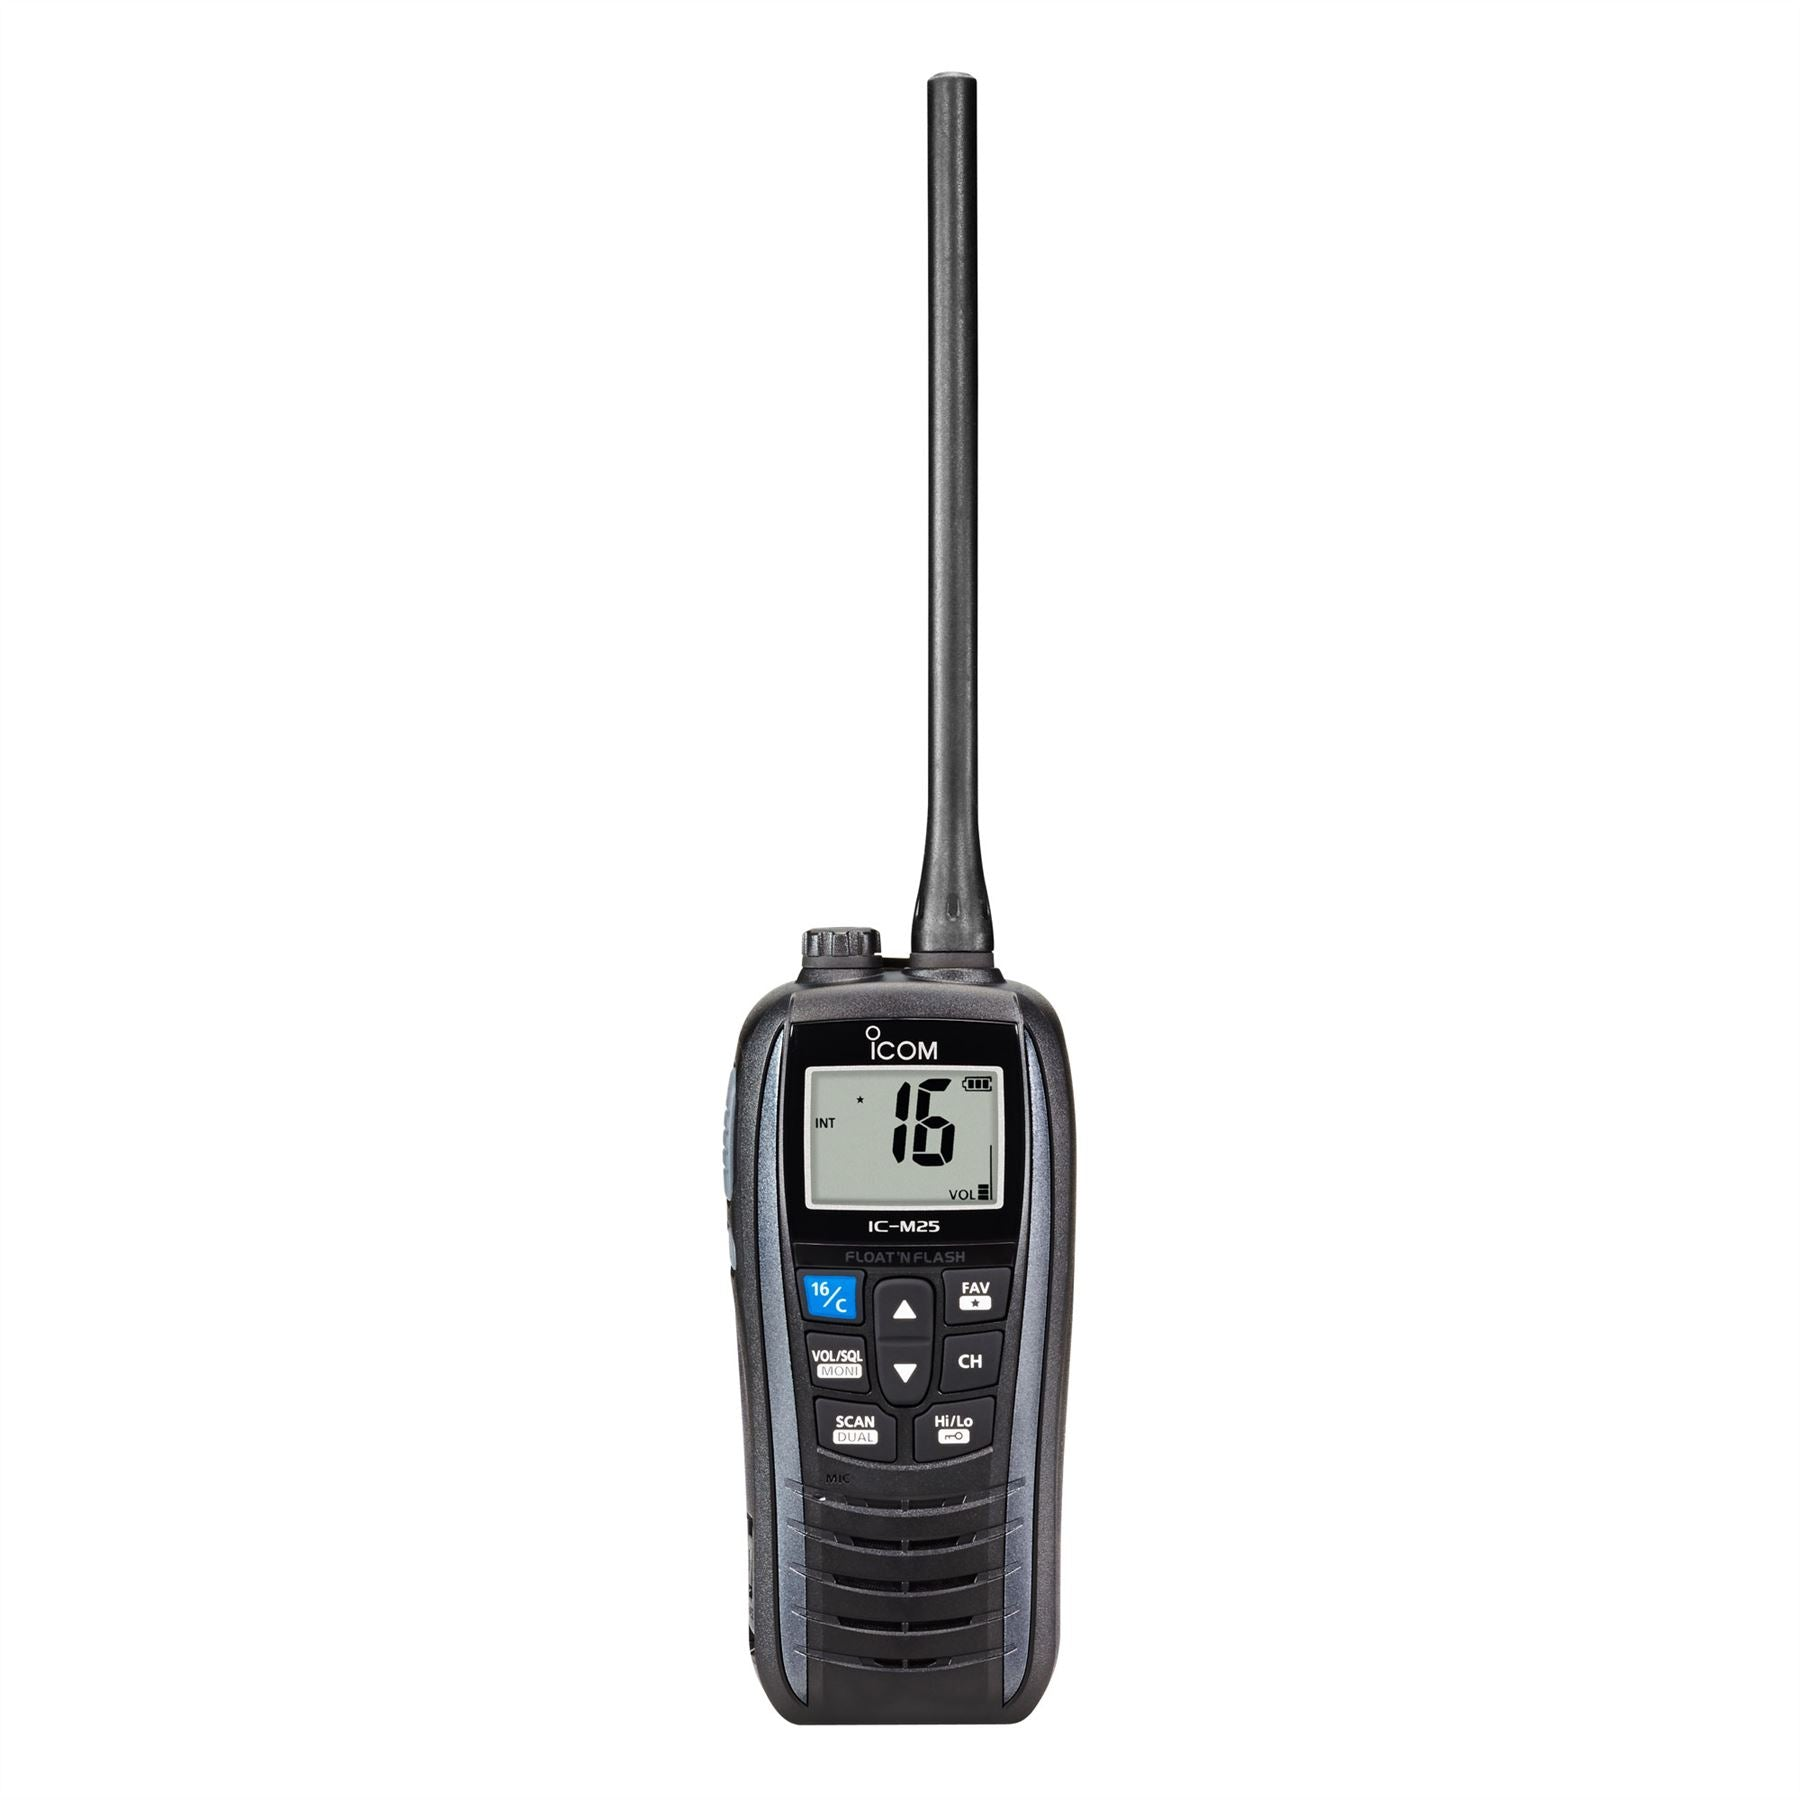 iCom IC-M25 Buoyant Handheld Marine VHF Radio - Metalic Grey